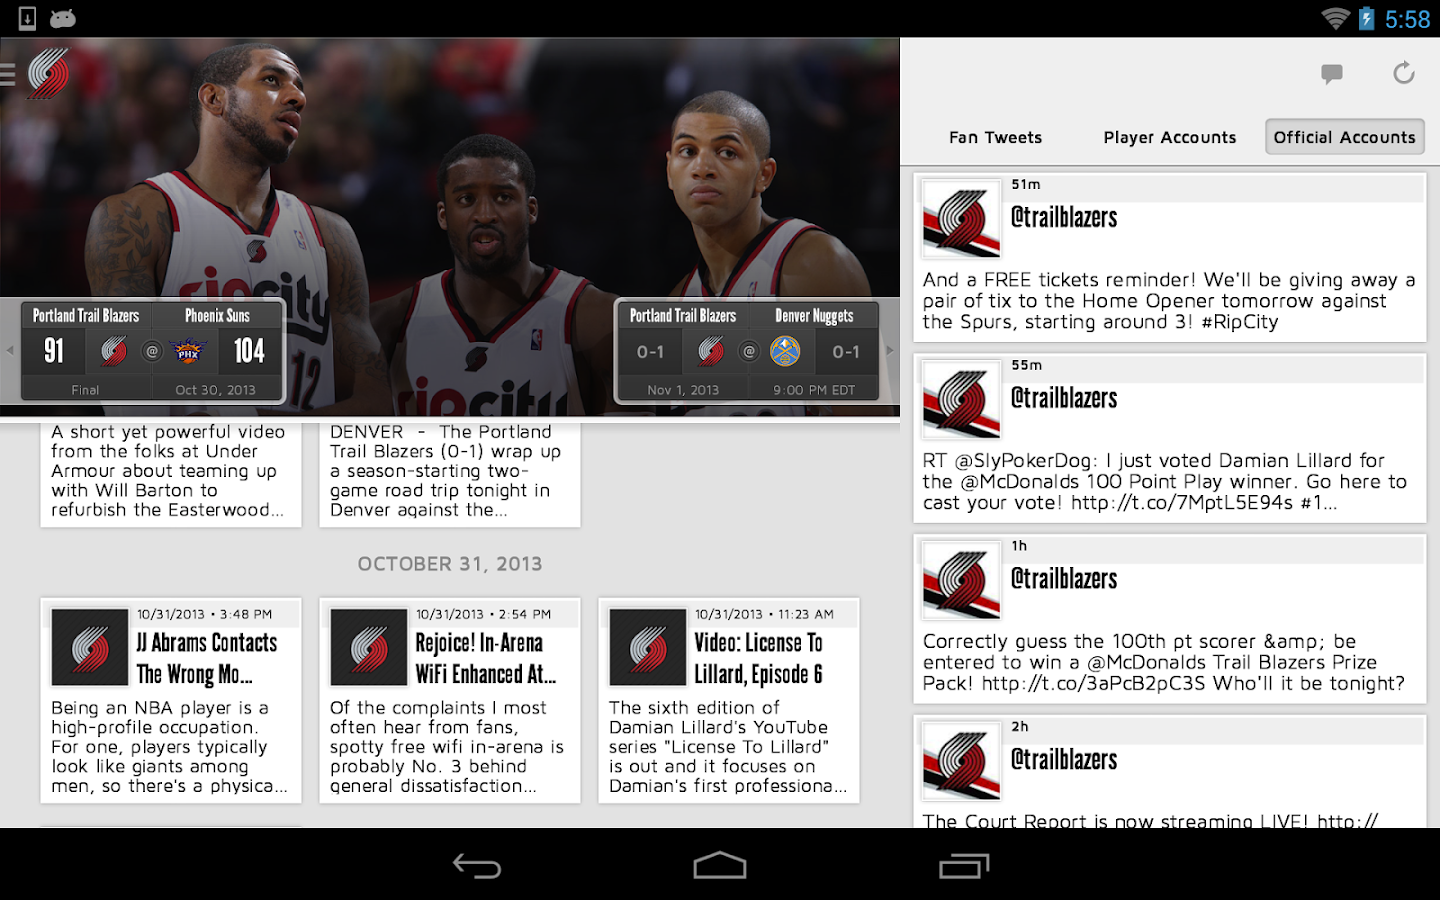 Portland Trail Blazers - screenshot